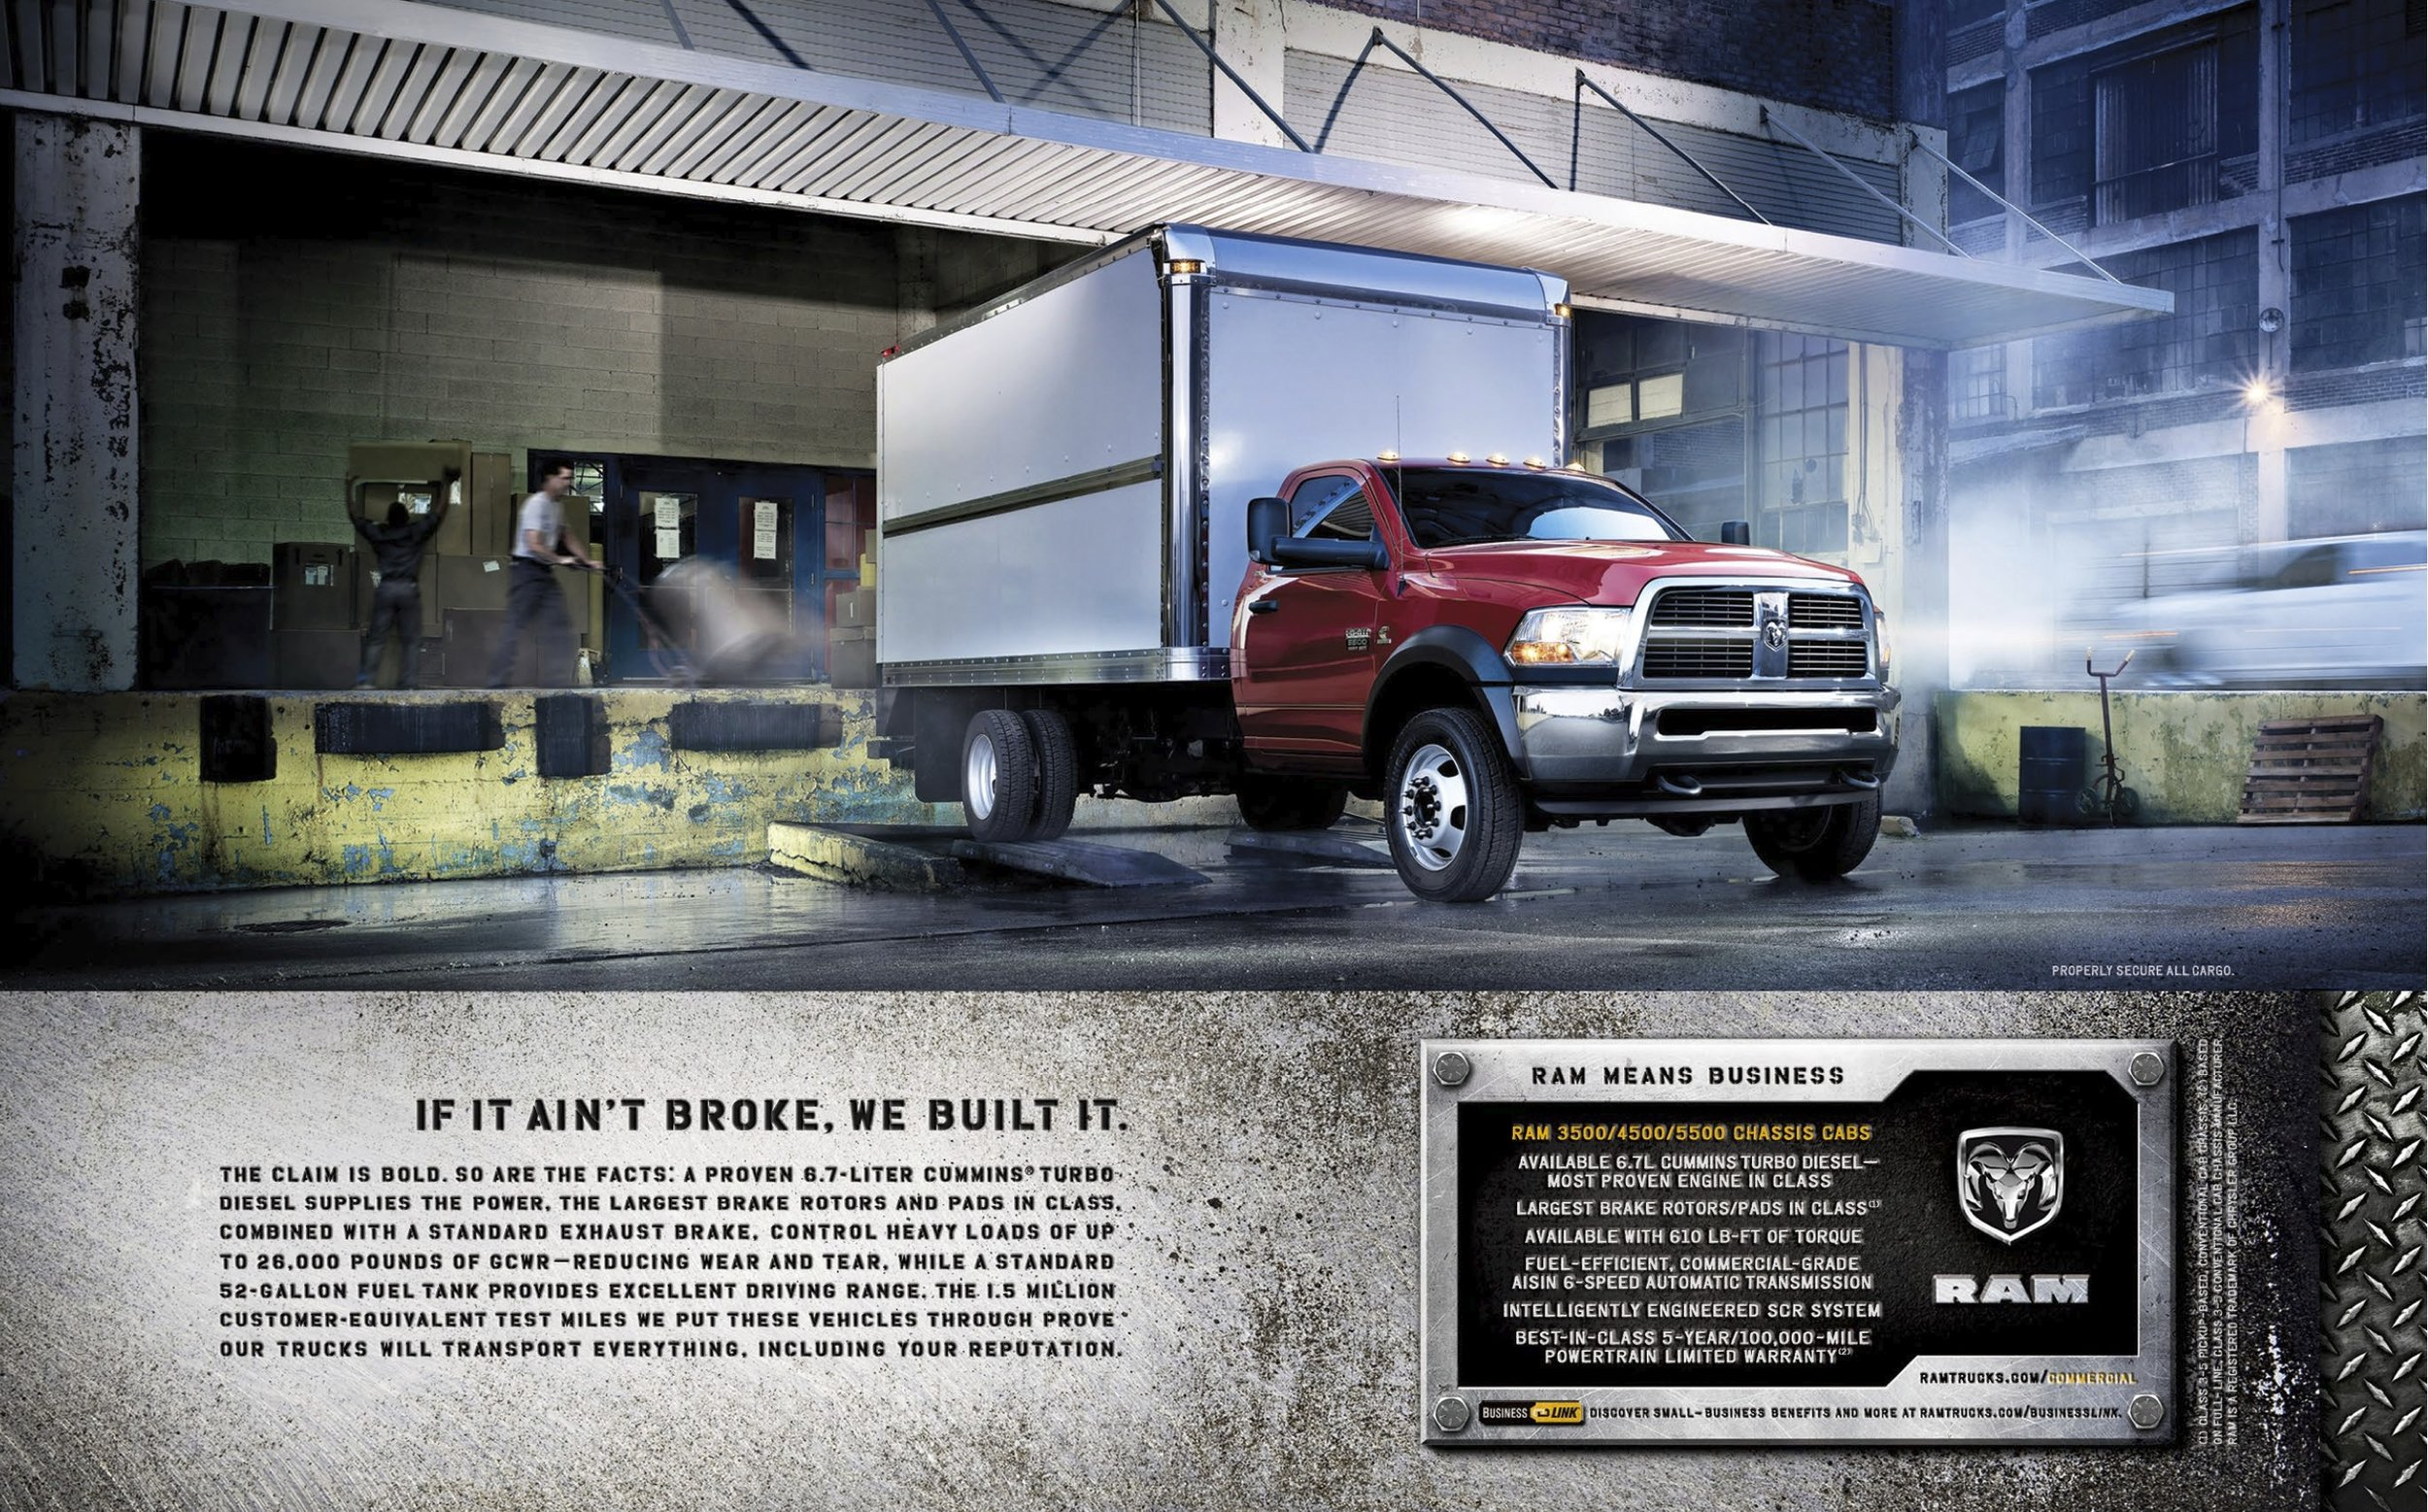 Chassis Cab Spreads6.jpg